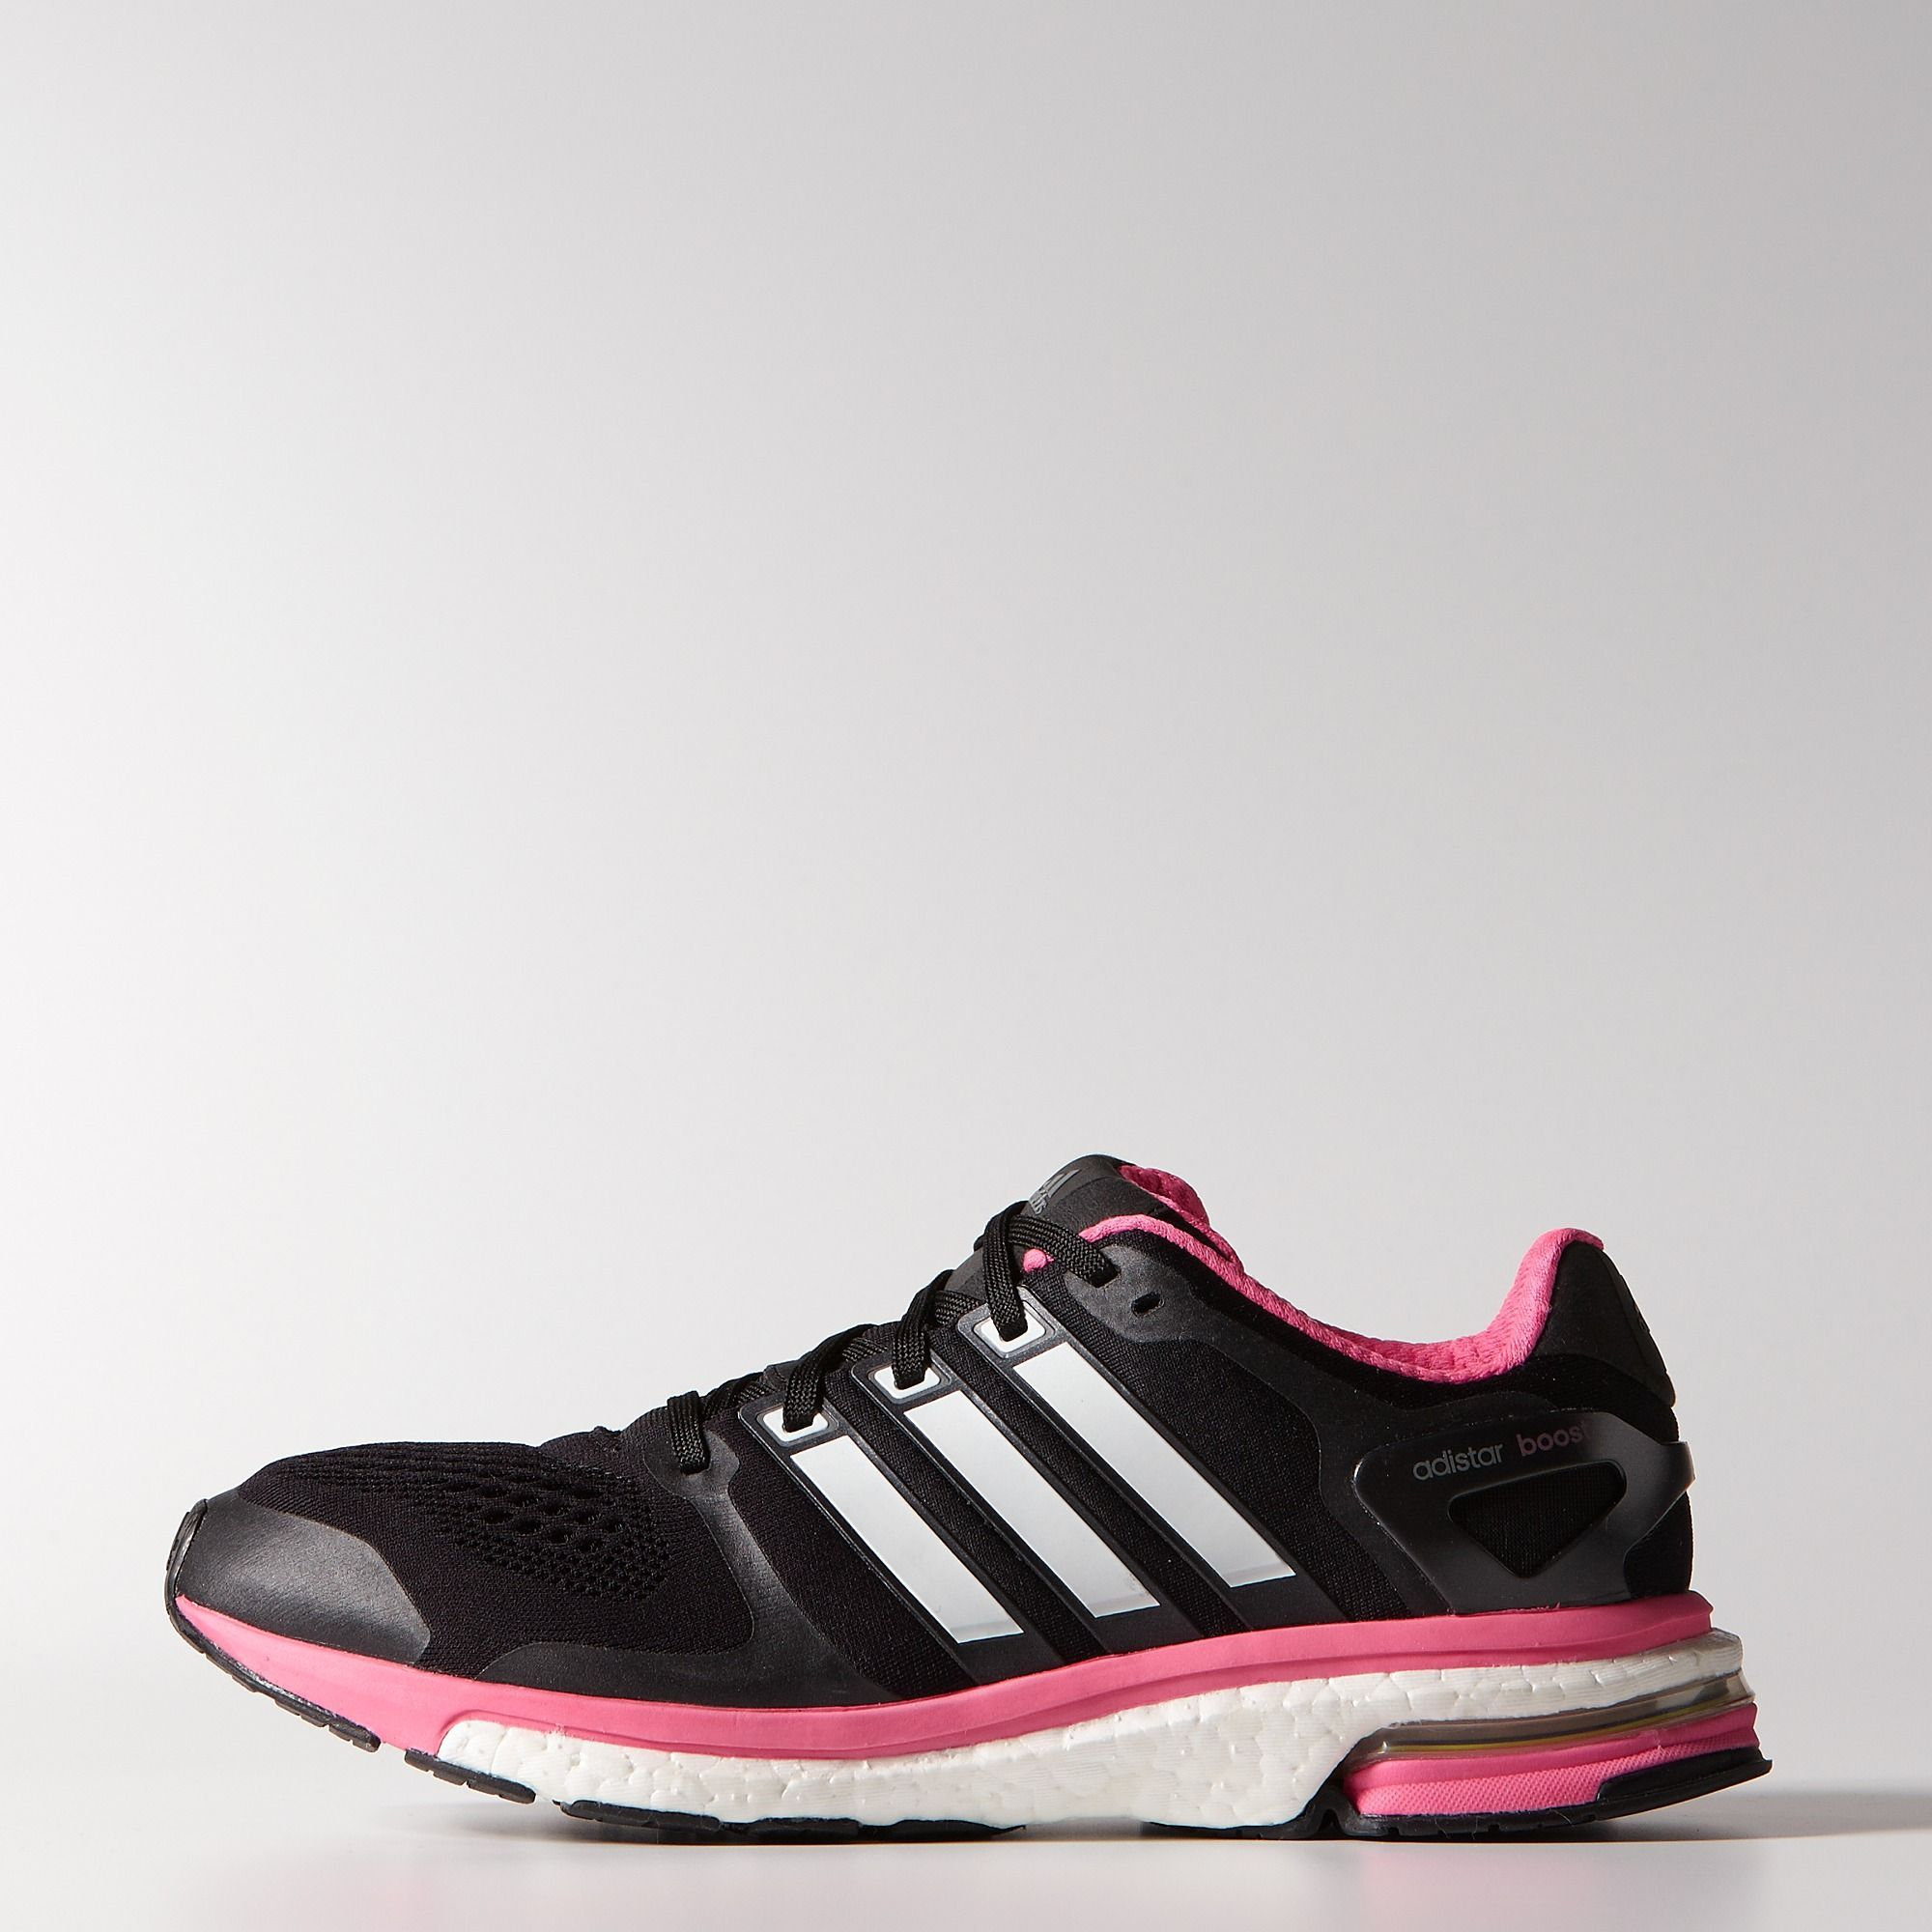 Cool And Classical Sports Adidas Adistar Boost ESM Women's